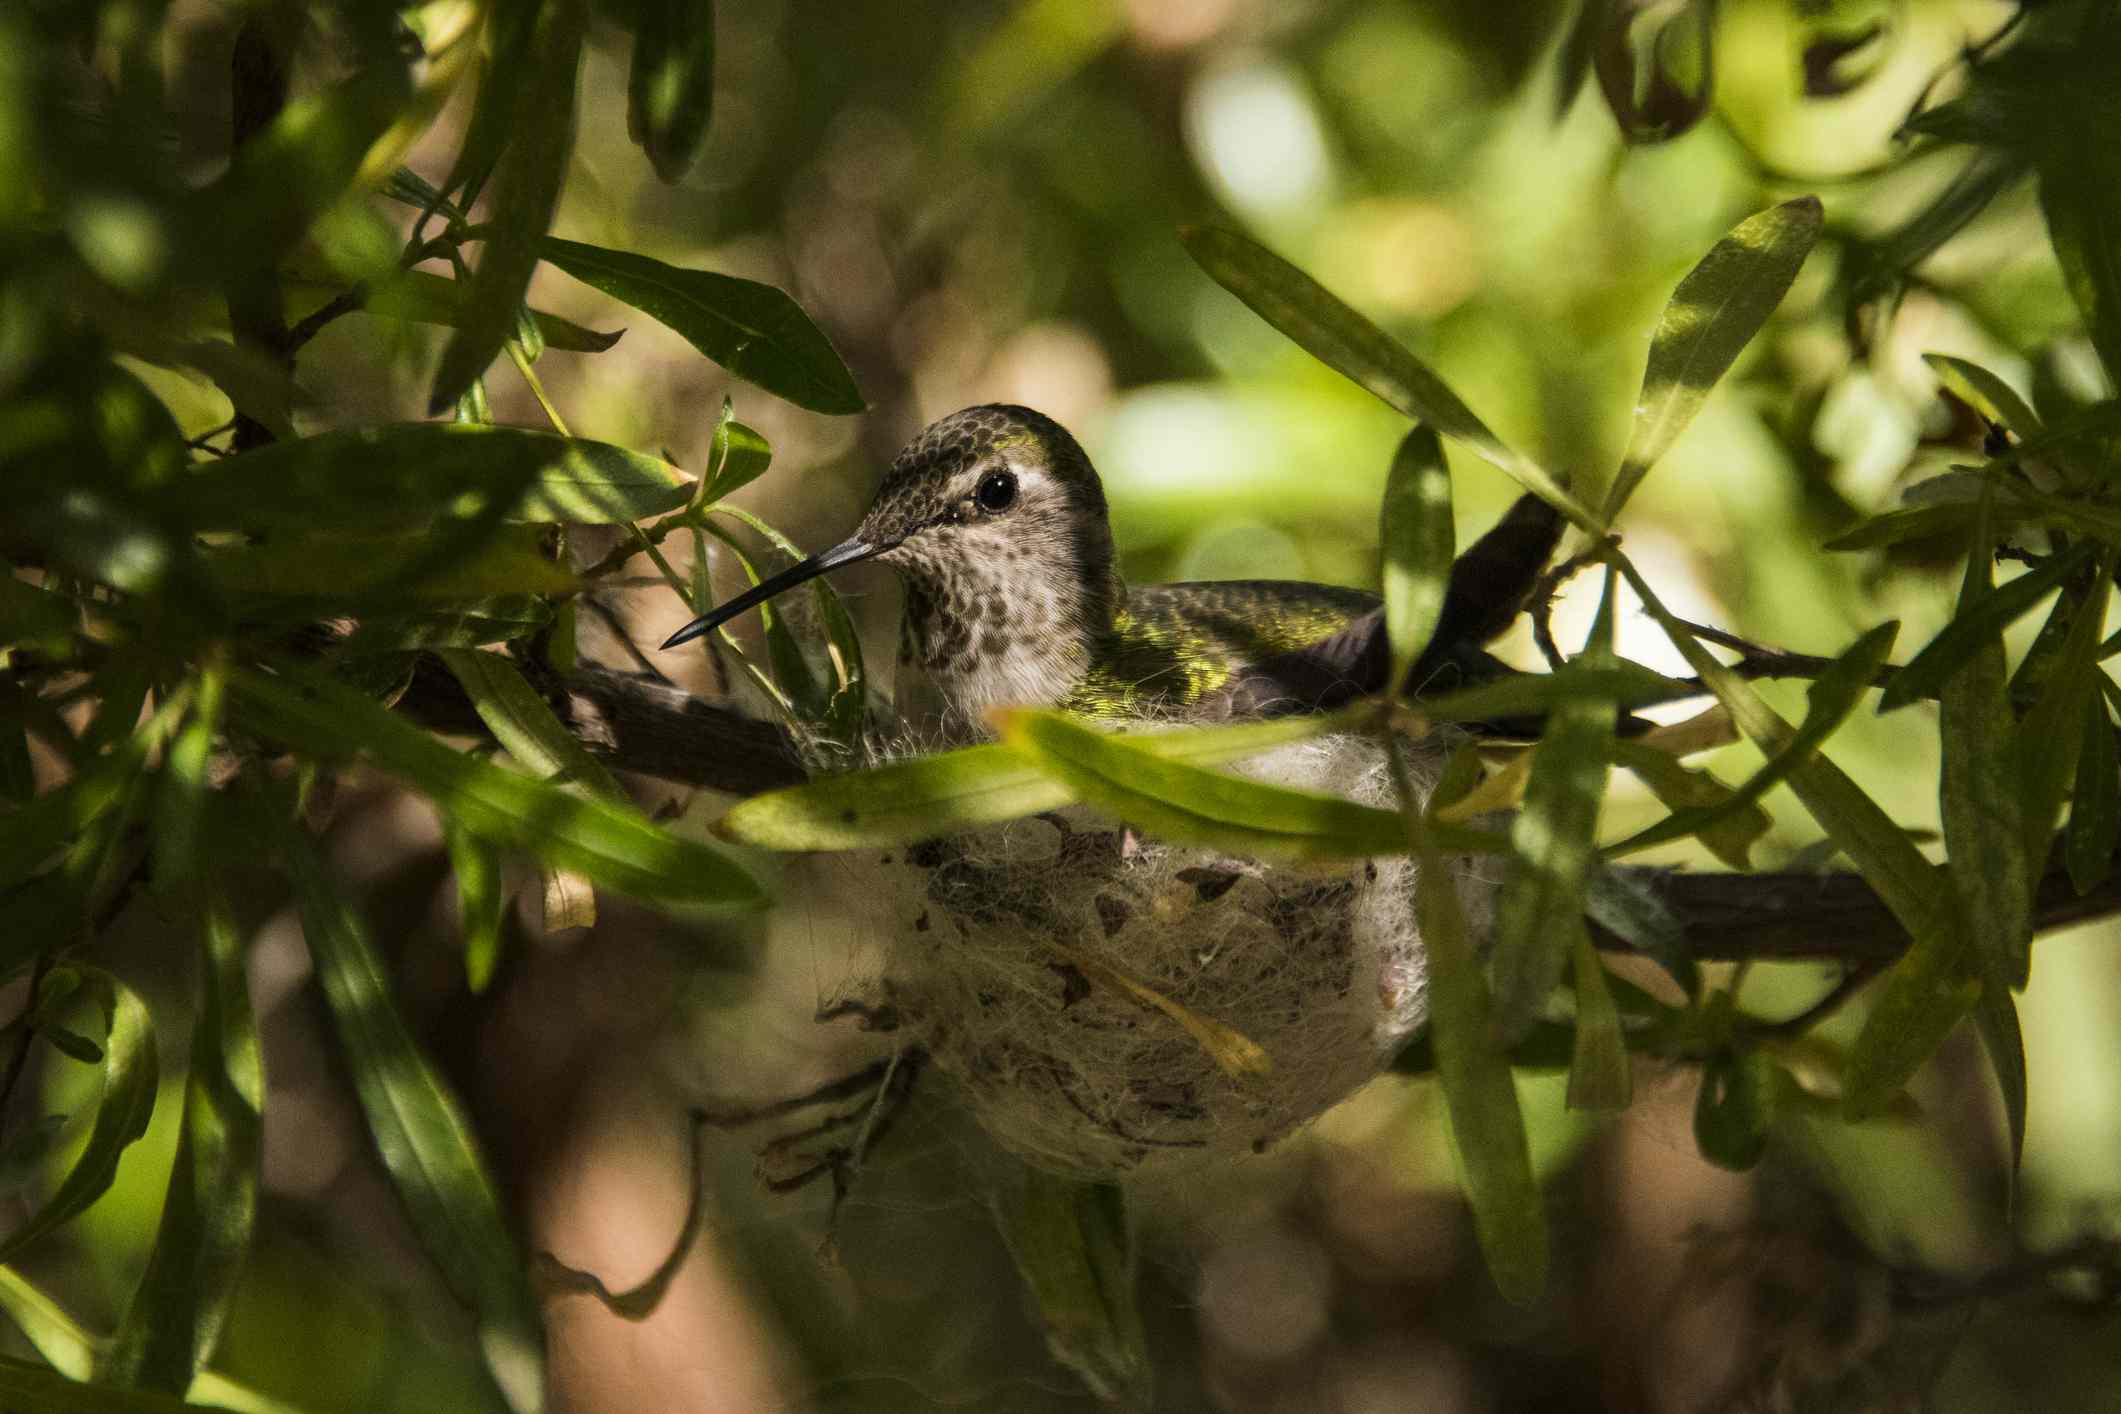 A hummingbird sitting in its nest in a tree.